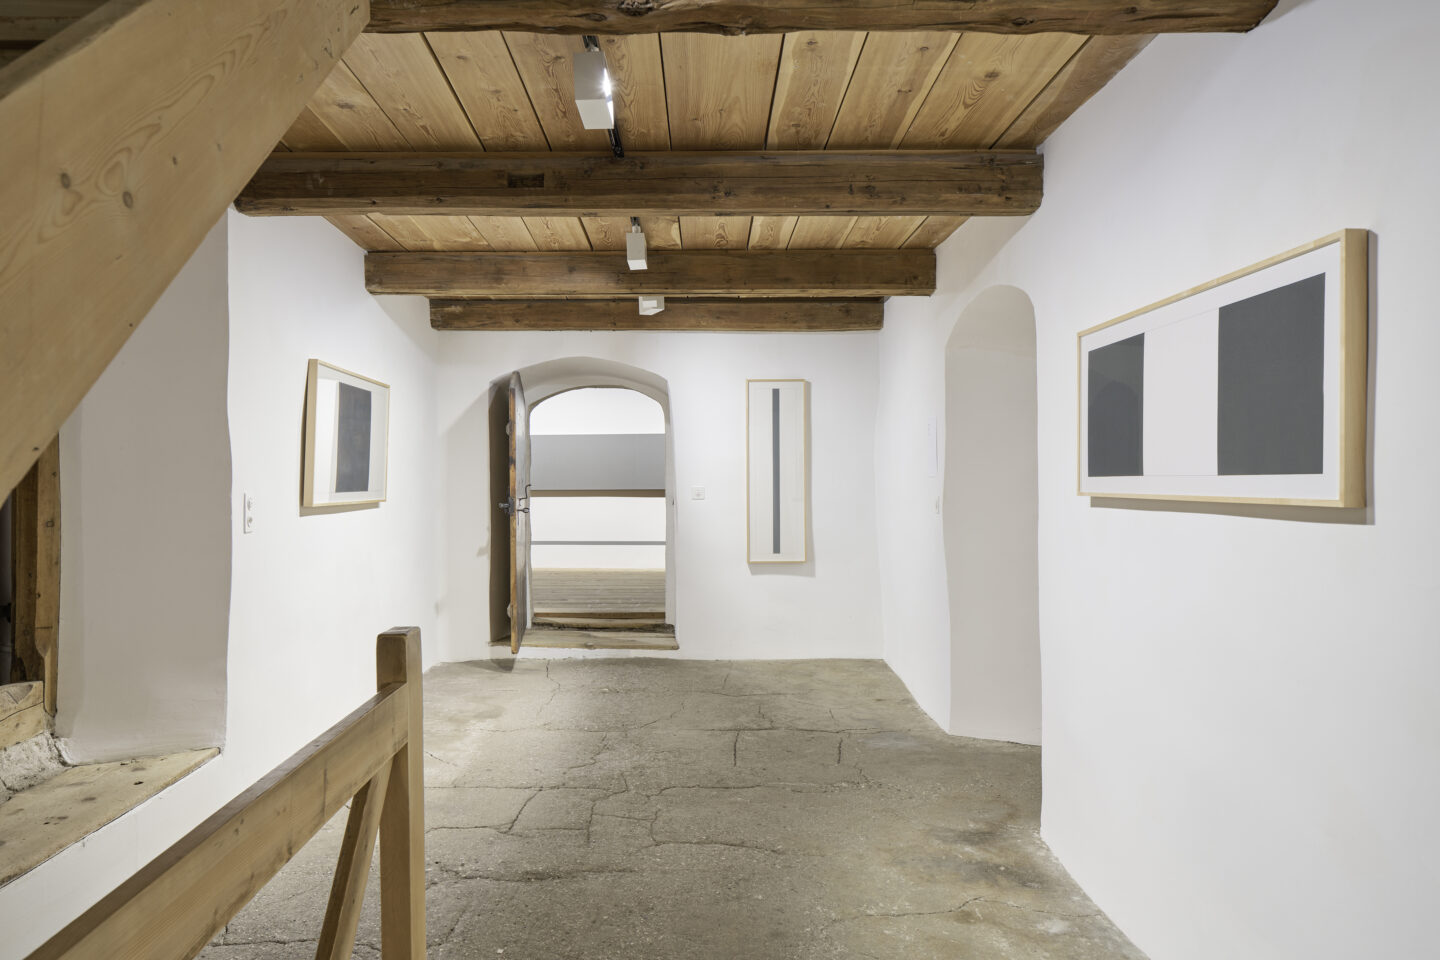 Exhibition View Alan Charlton Soloshow «It Started with a Chameleon» at Galerie Tschudi, Zuoz, 2019 / Photo: Ralph Feiner, Malans / courtesy: the artist and Galerie Tschudi